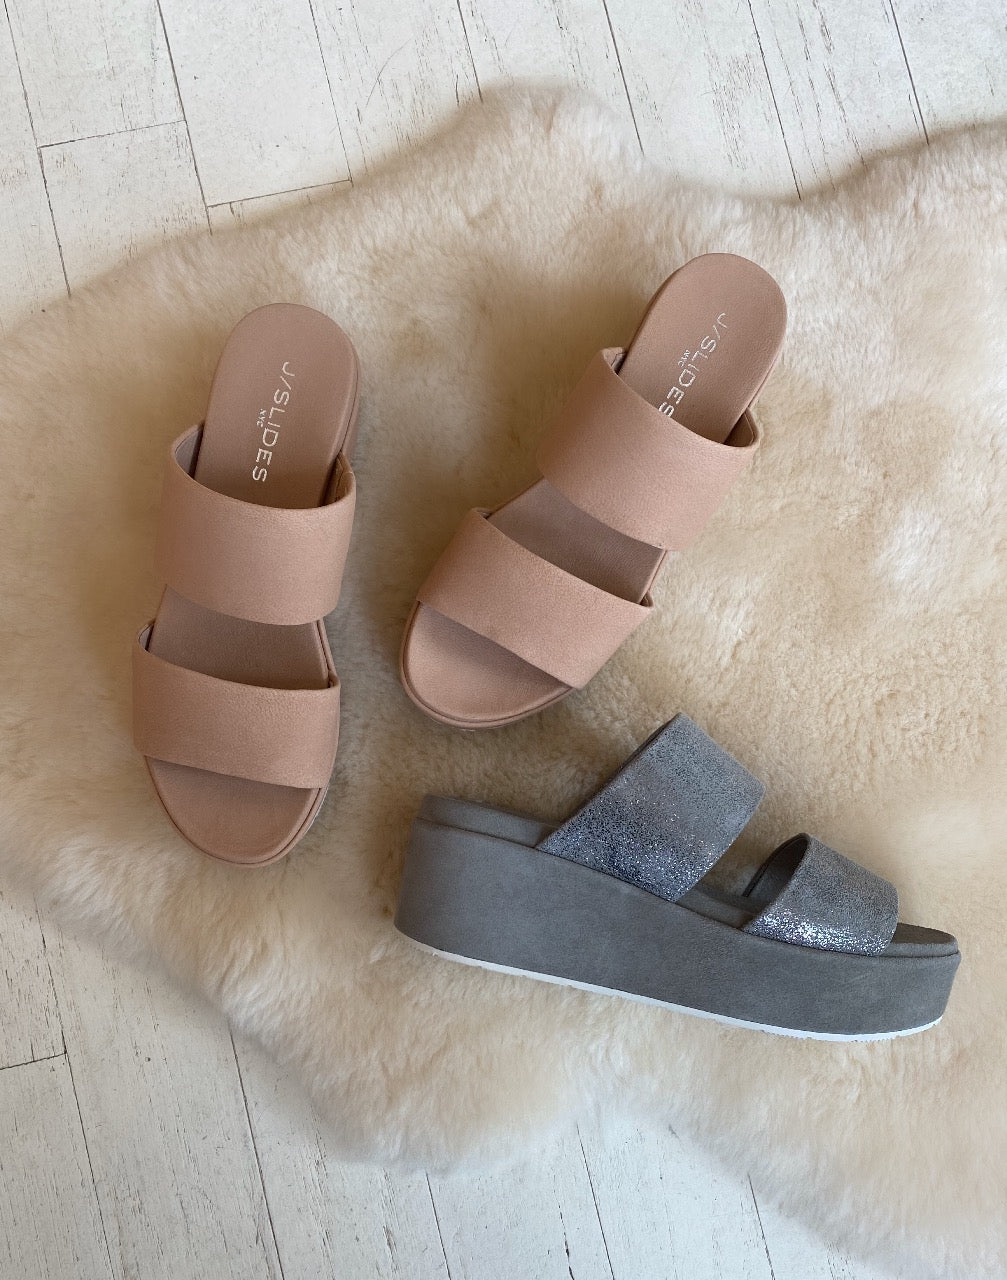 J SLIDES - QUINCY IN BLUSH NUBUCK